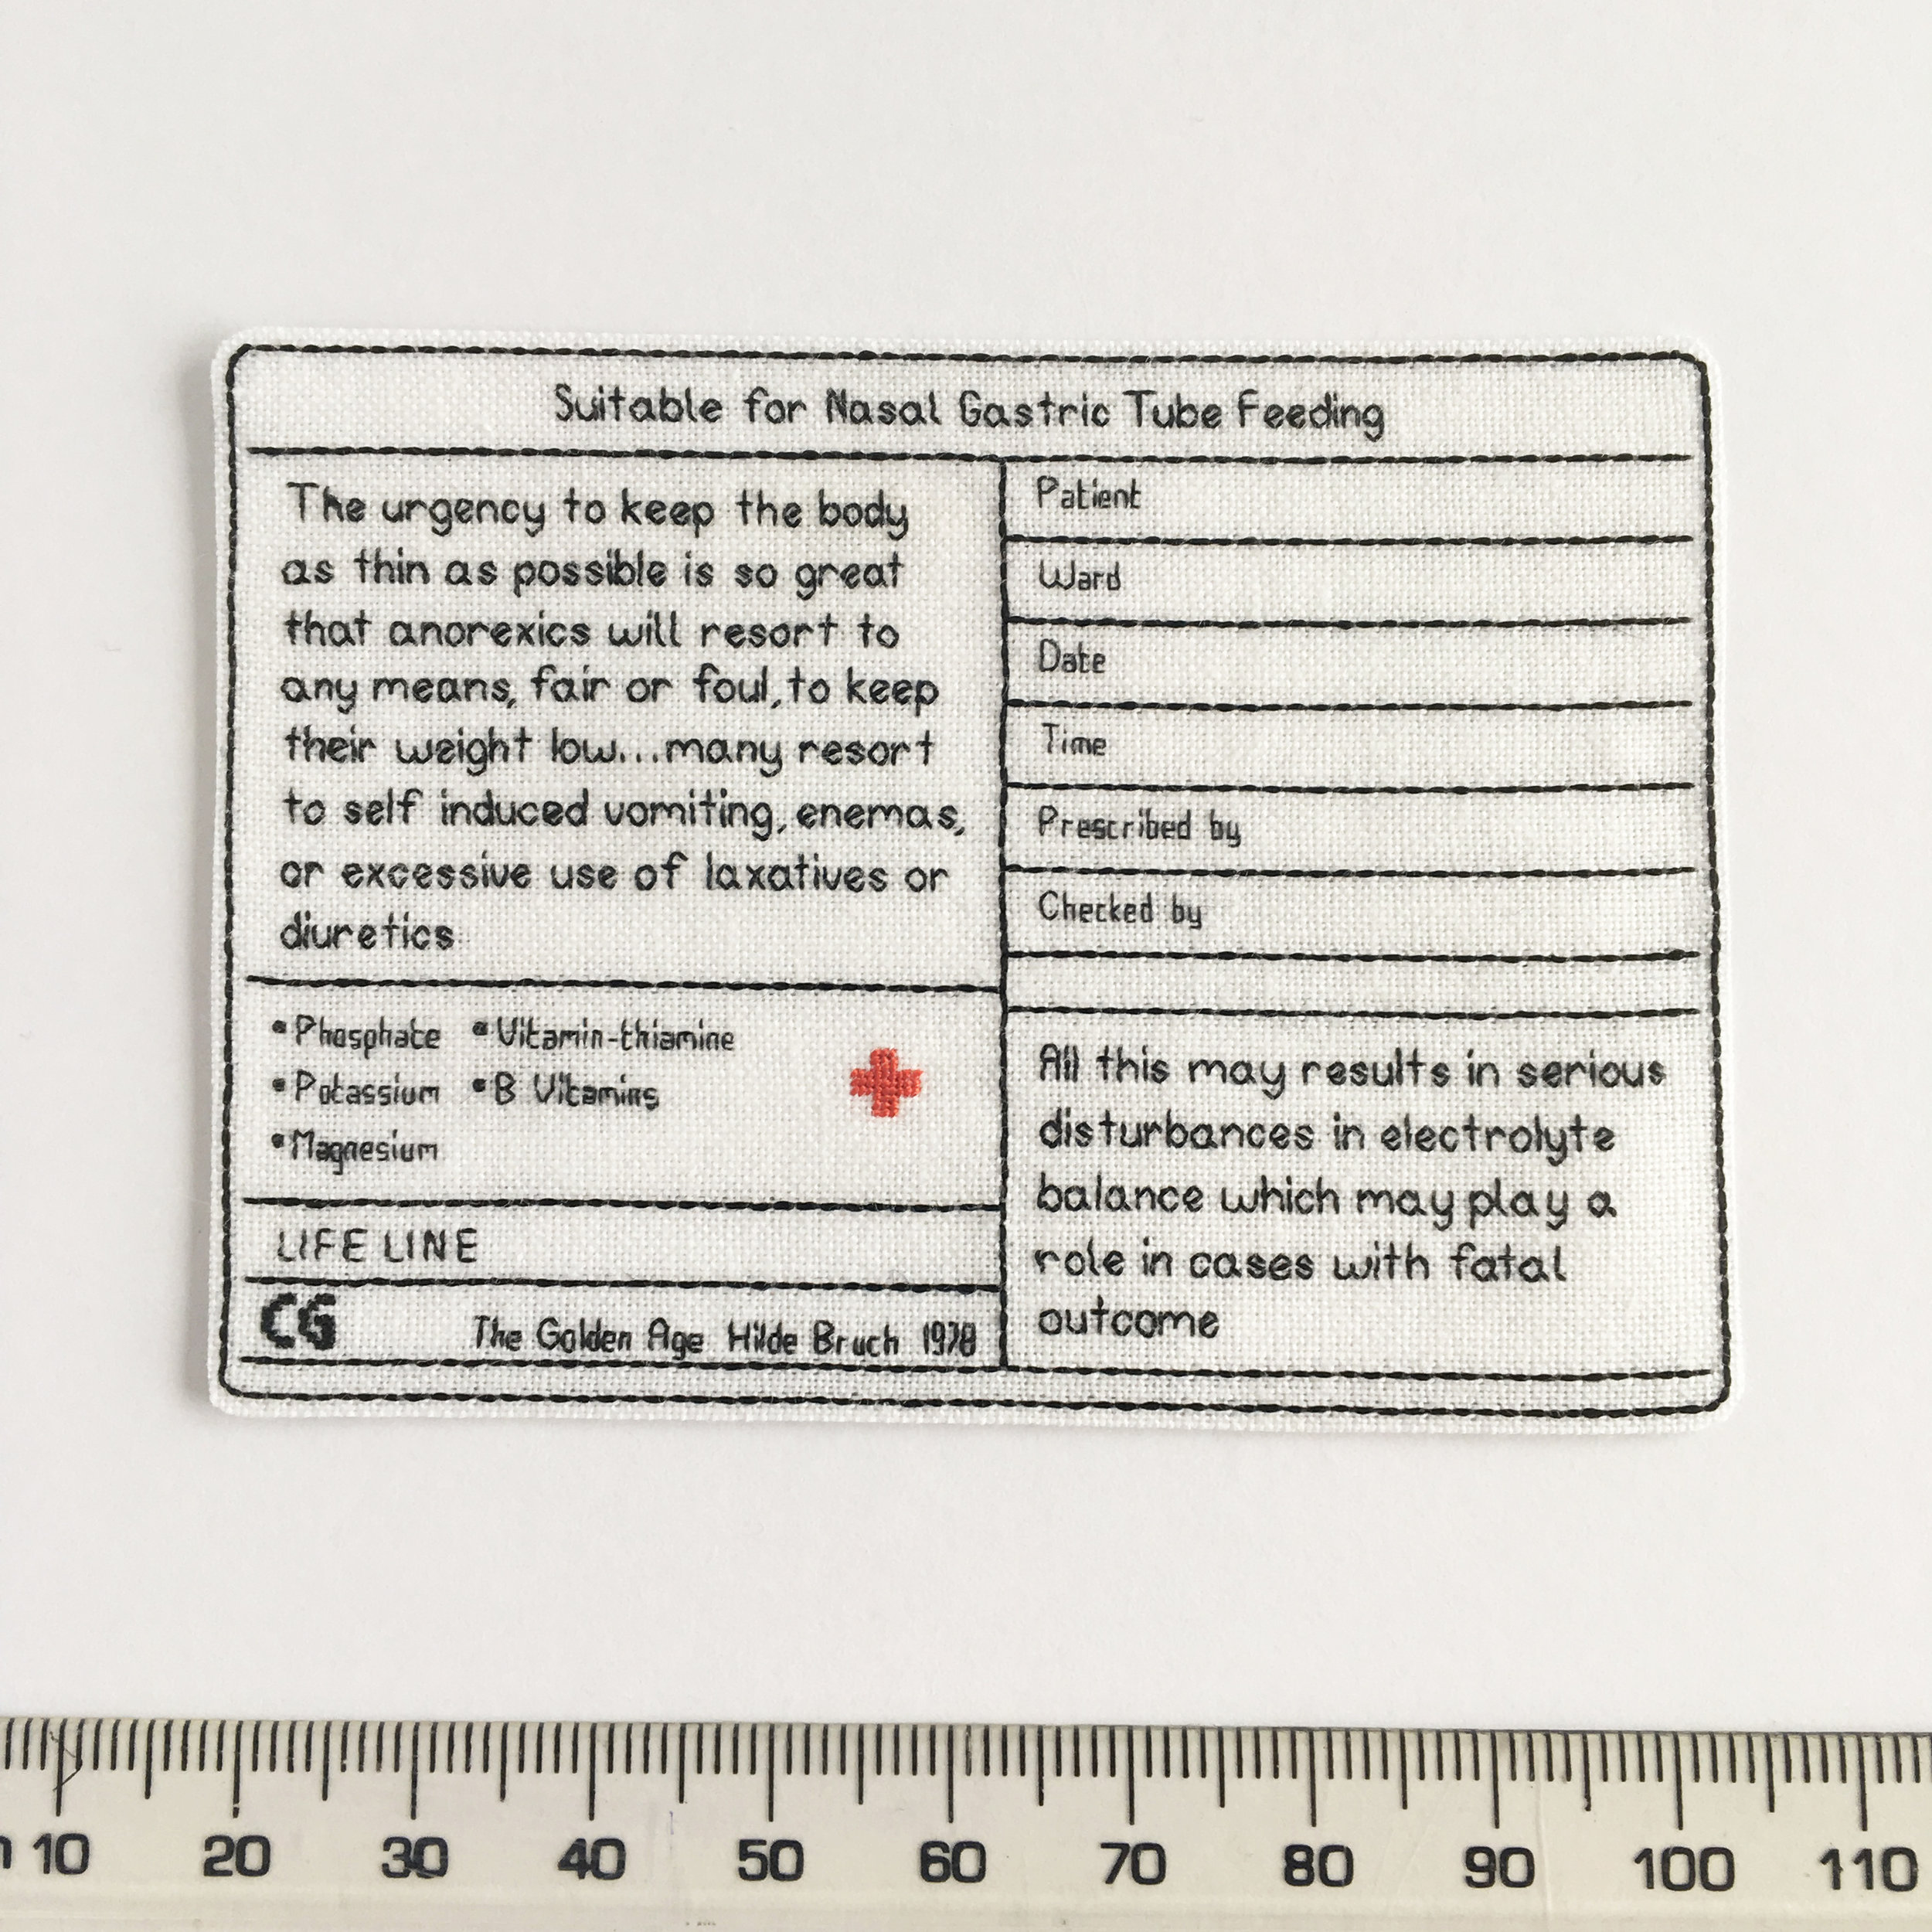 Label for drip bag